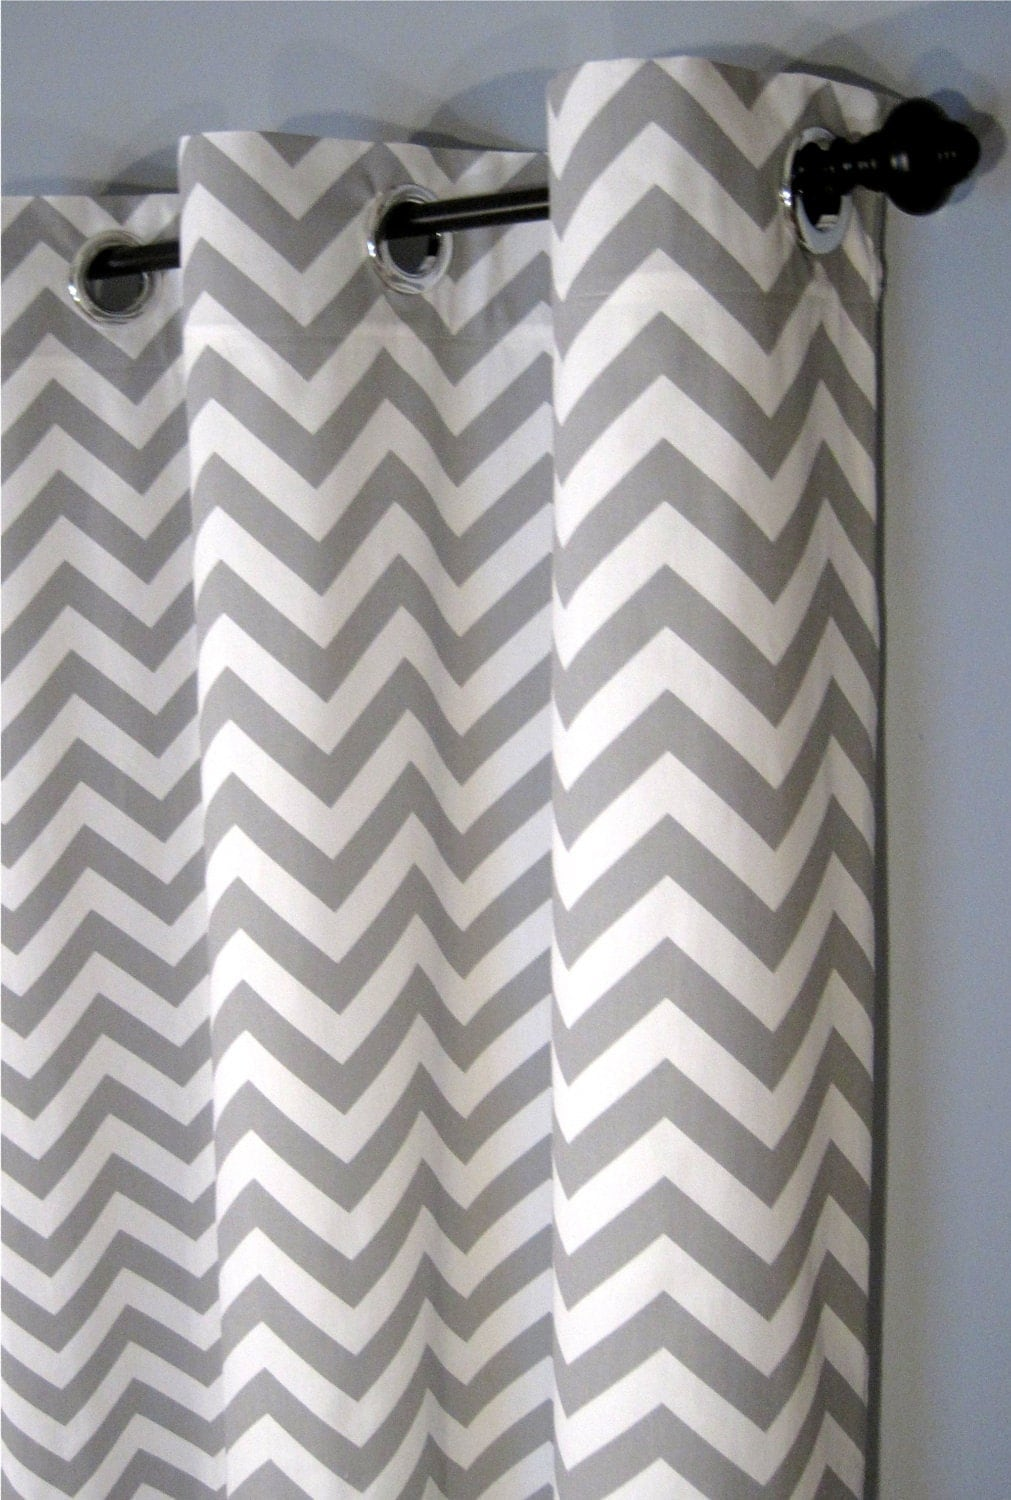 Purple Polka Dot Curtains Grey and White Chevron Blanket